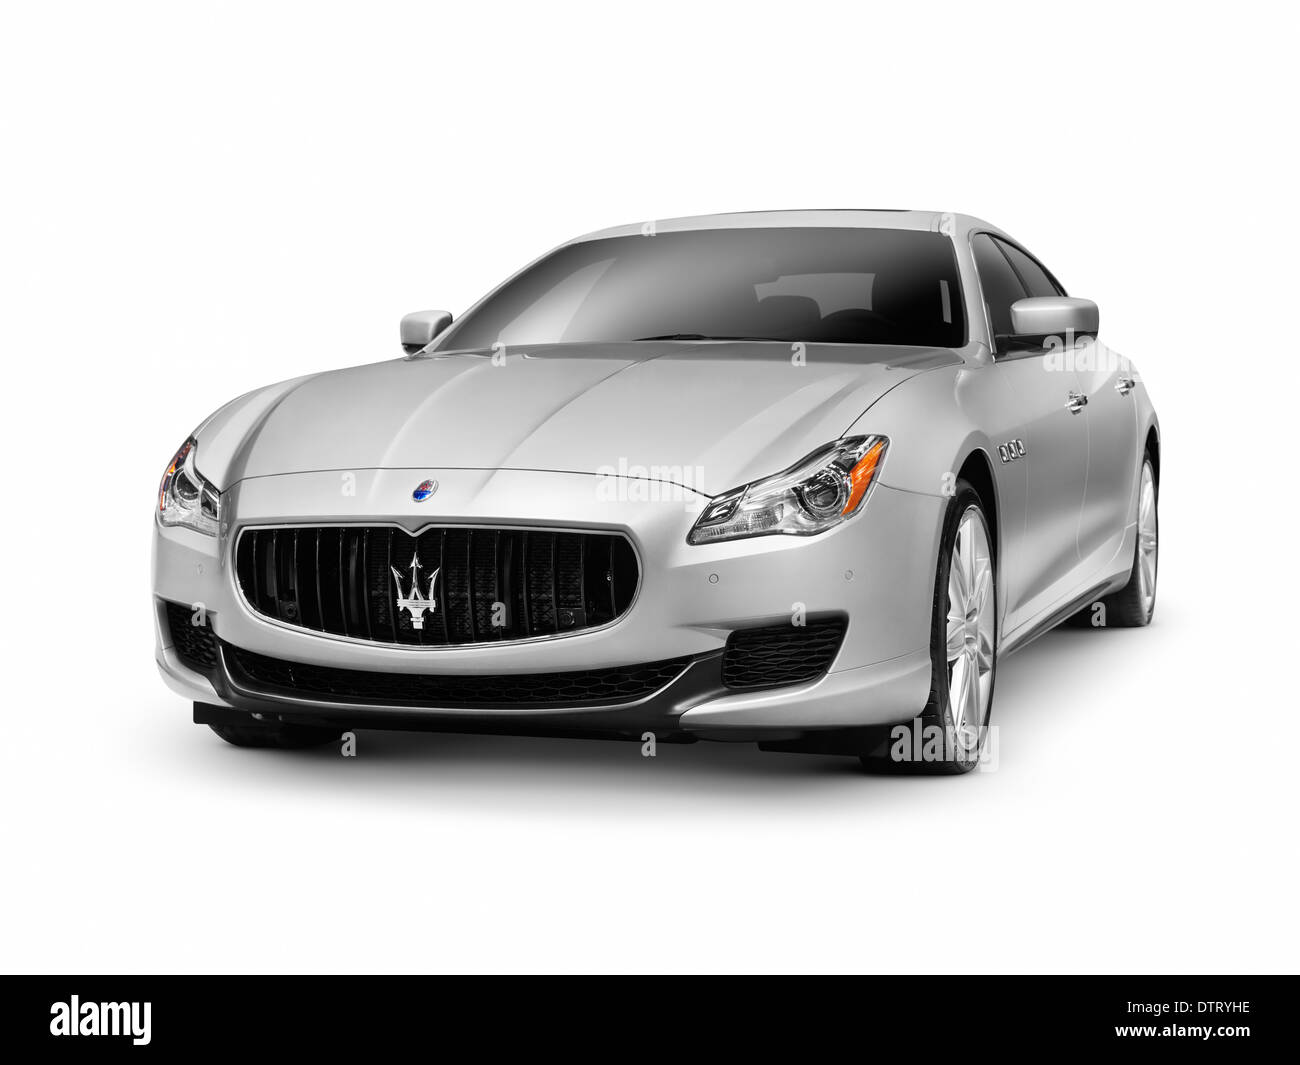 2014 Maserati Quattroporte S Q4 luxury car isolated on white background with clipping path - Stock Image